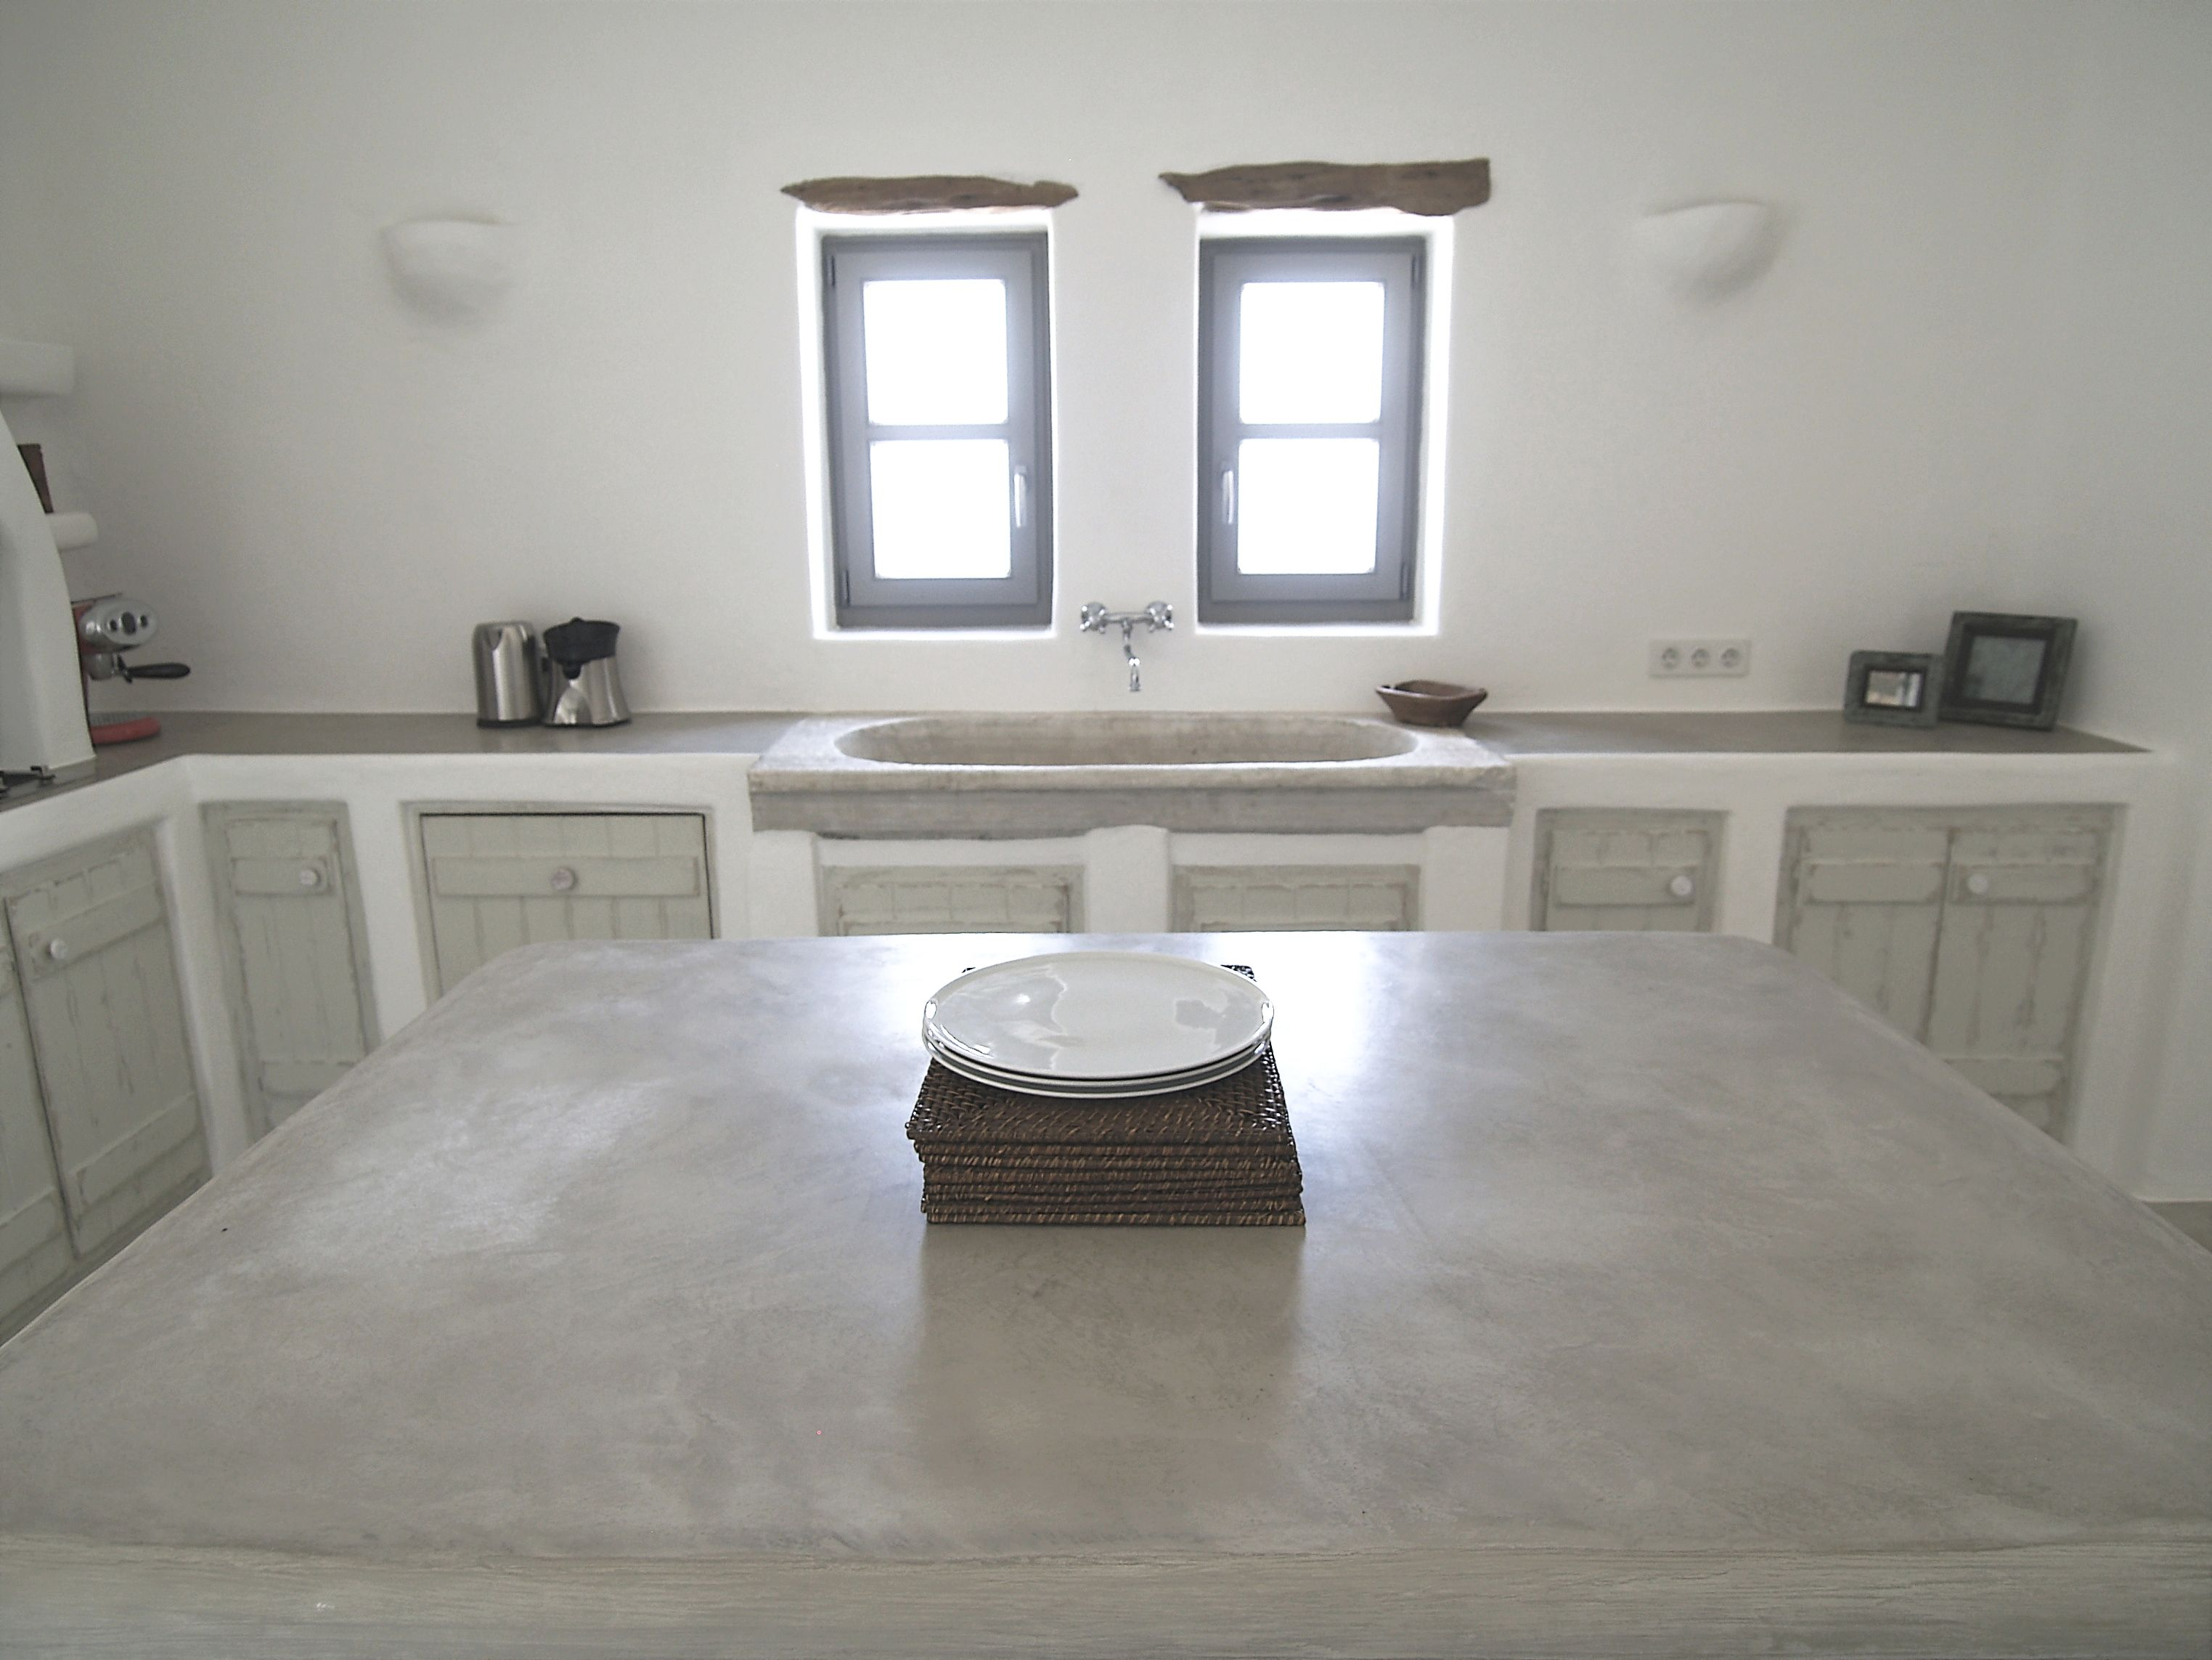 Paros Greece Traditional built hood cupboards and counter